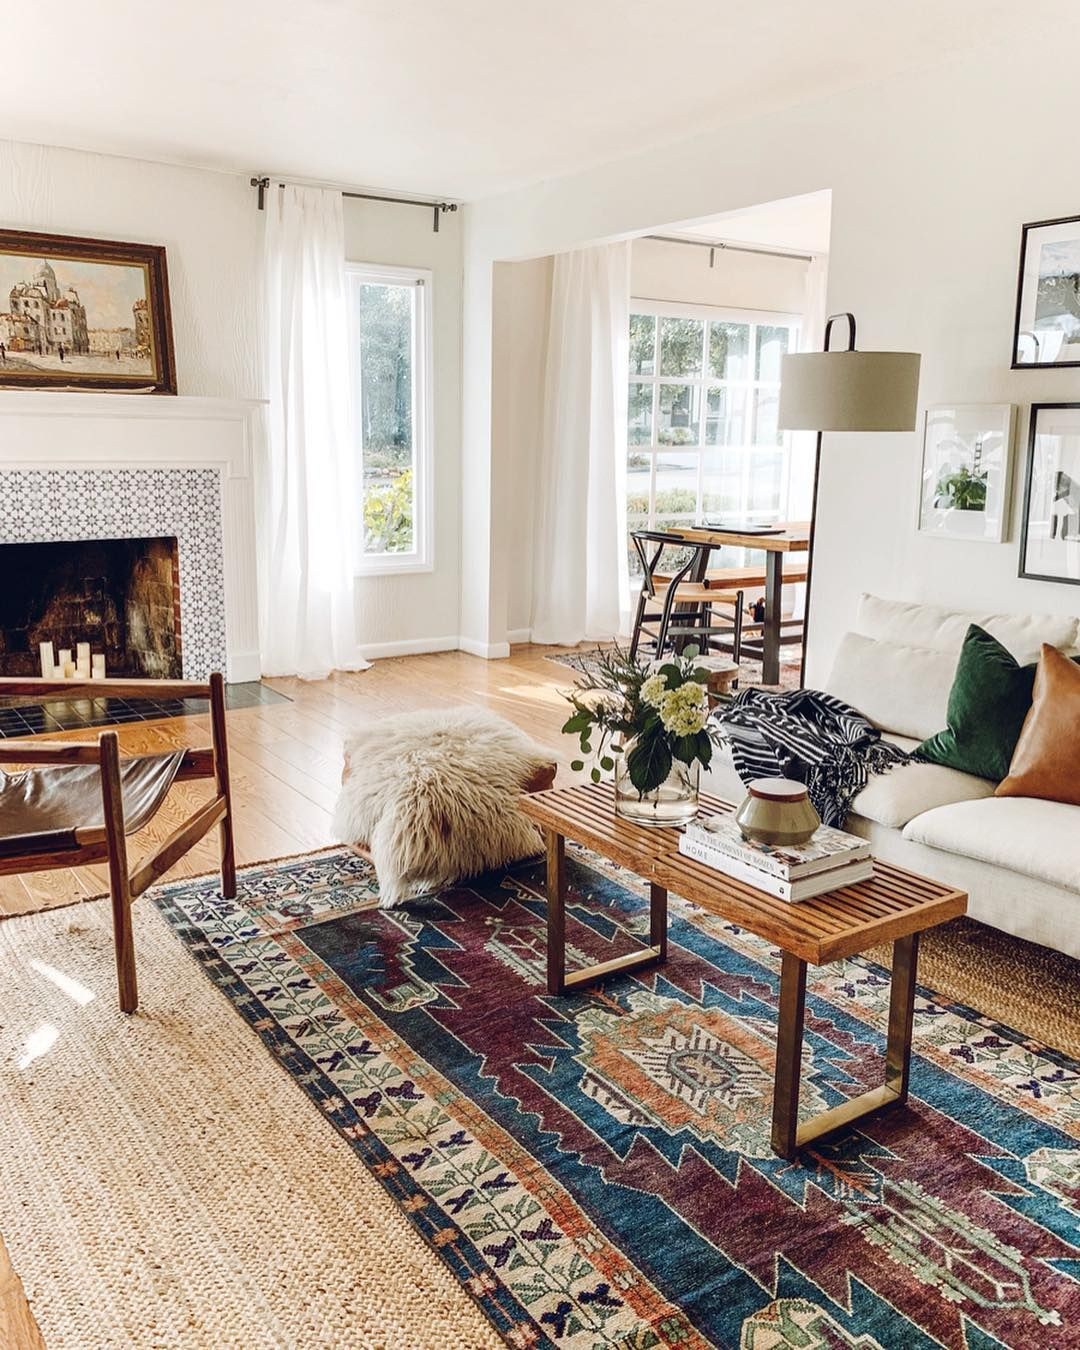 Rebecca Genevieve On Instagram Character How Do You Add Character To A Rental House Without Doing Permanent Chan Home Living Room Home Rugs In Living Room